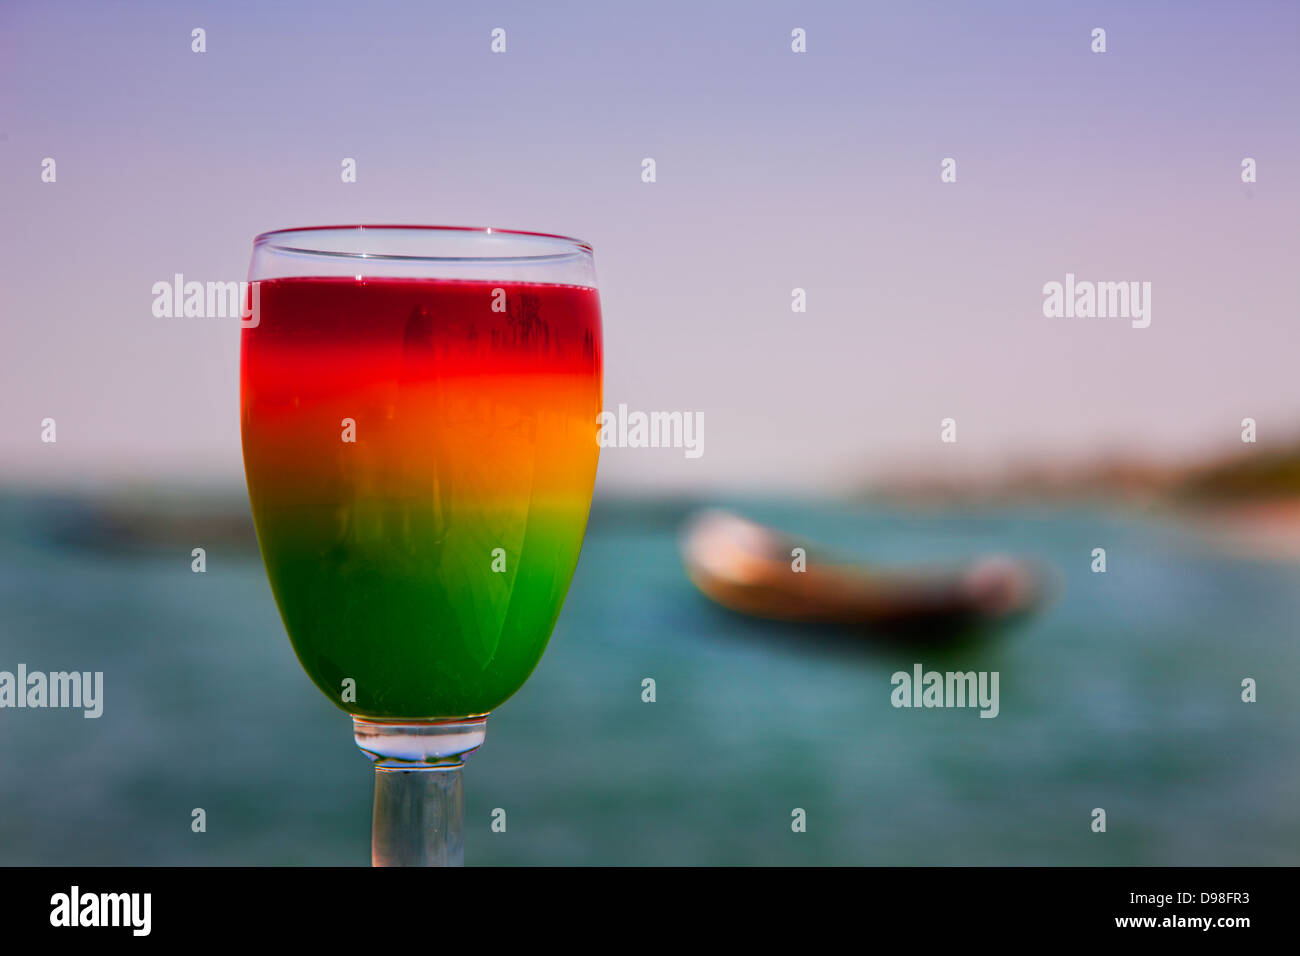 Exotic Drinks Stock Photos & Exotic Drinks Stock Images - Alamy